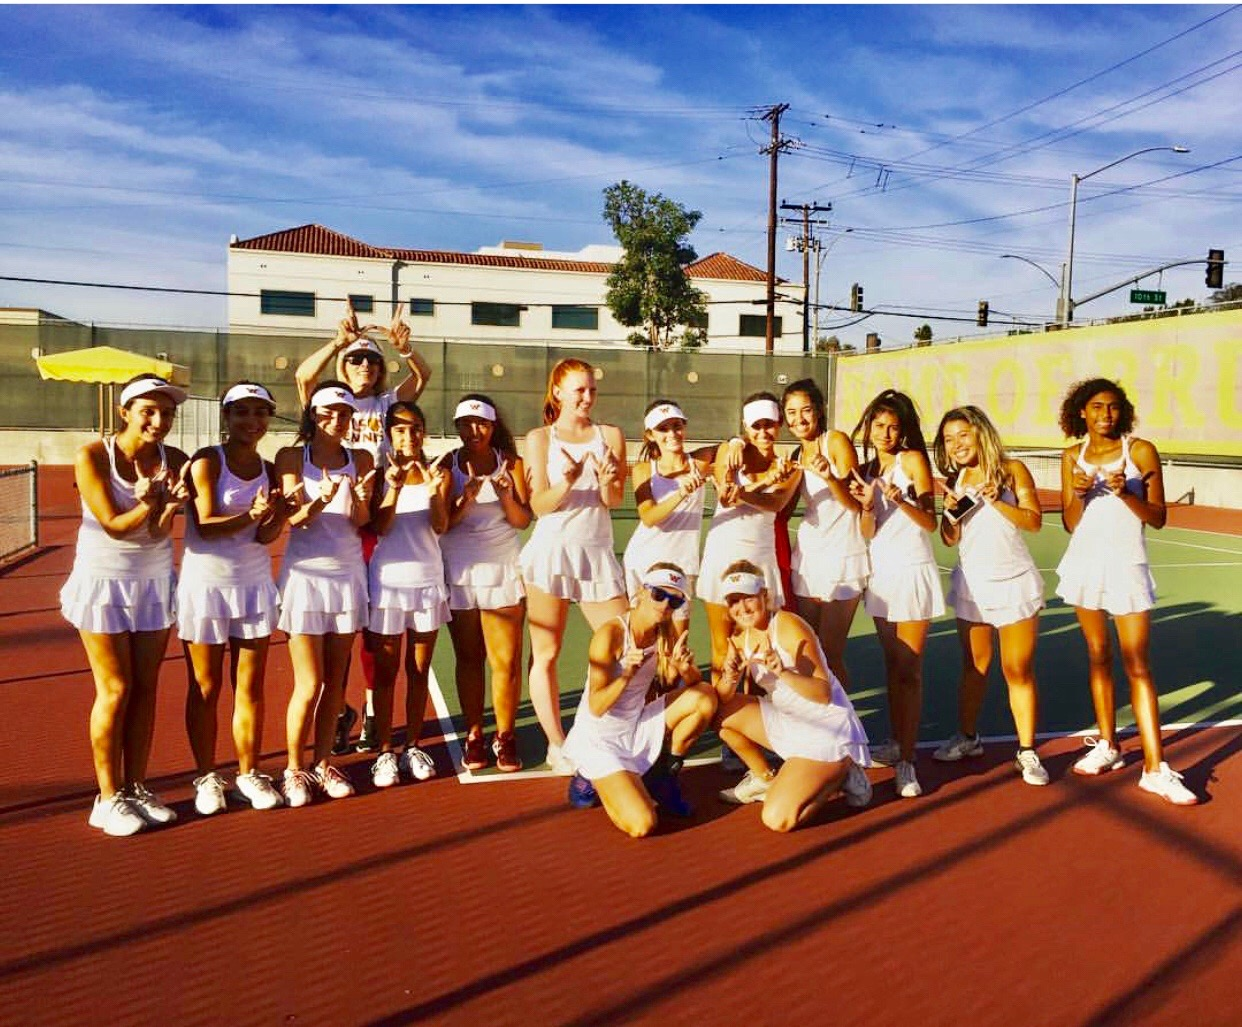 winning girls tennis team posing for photo